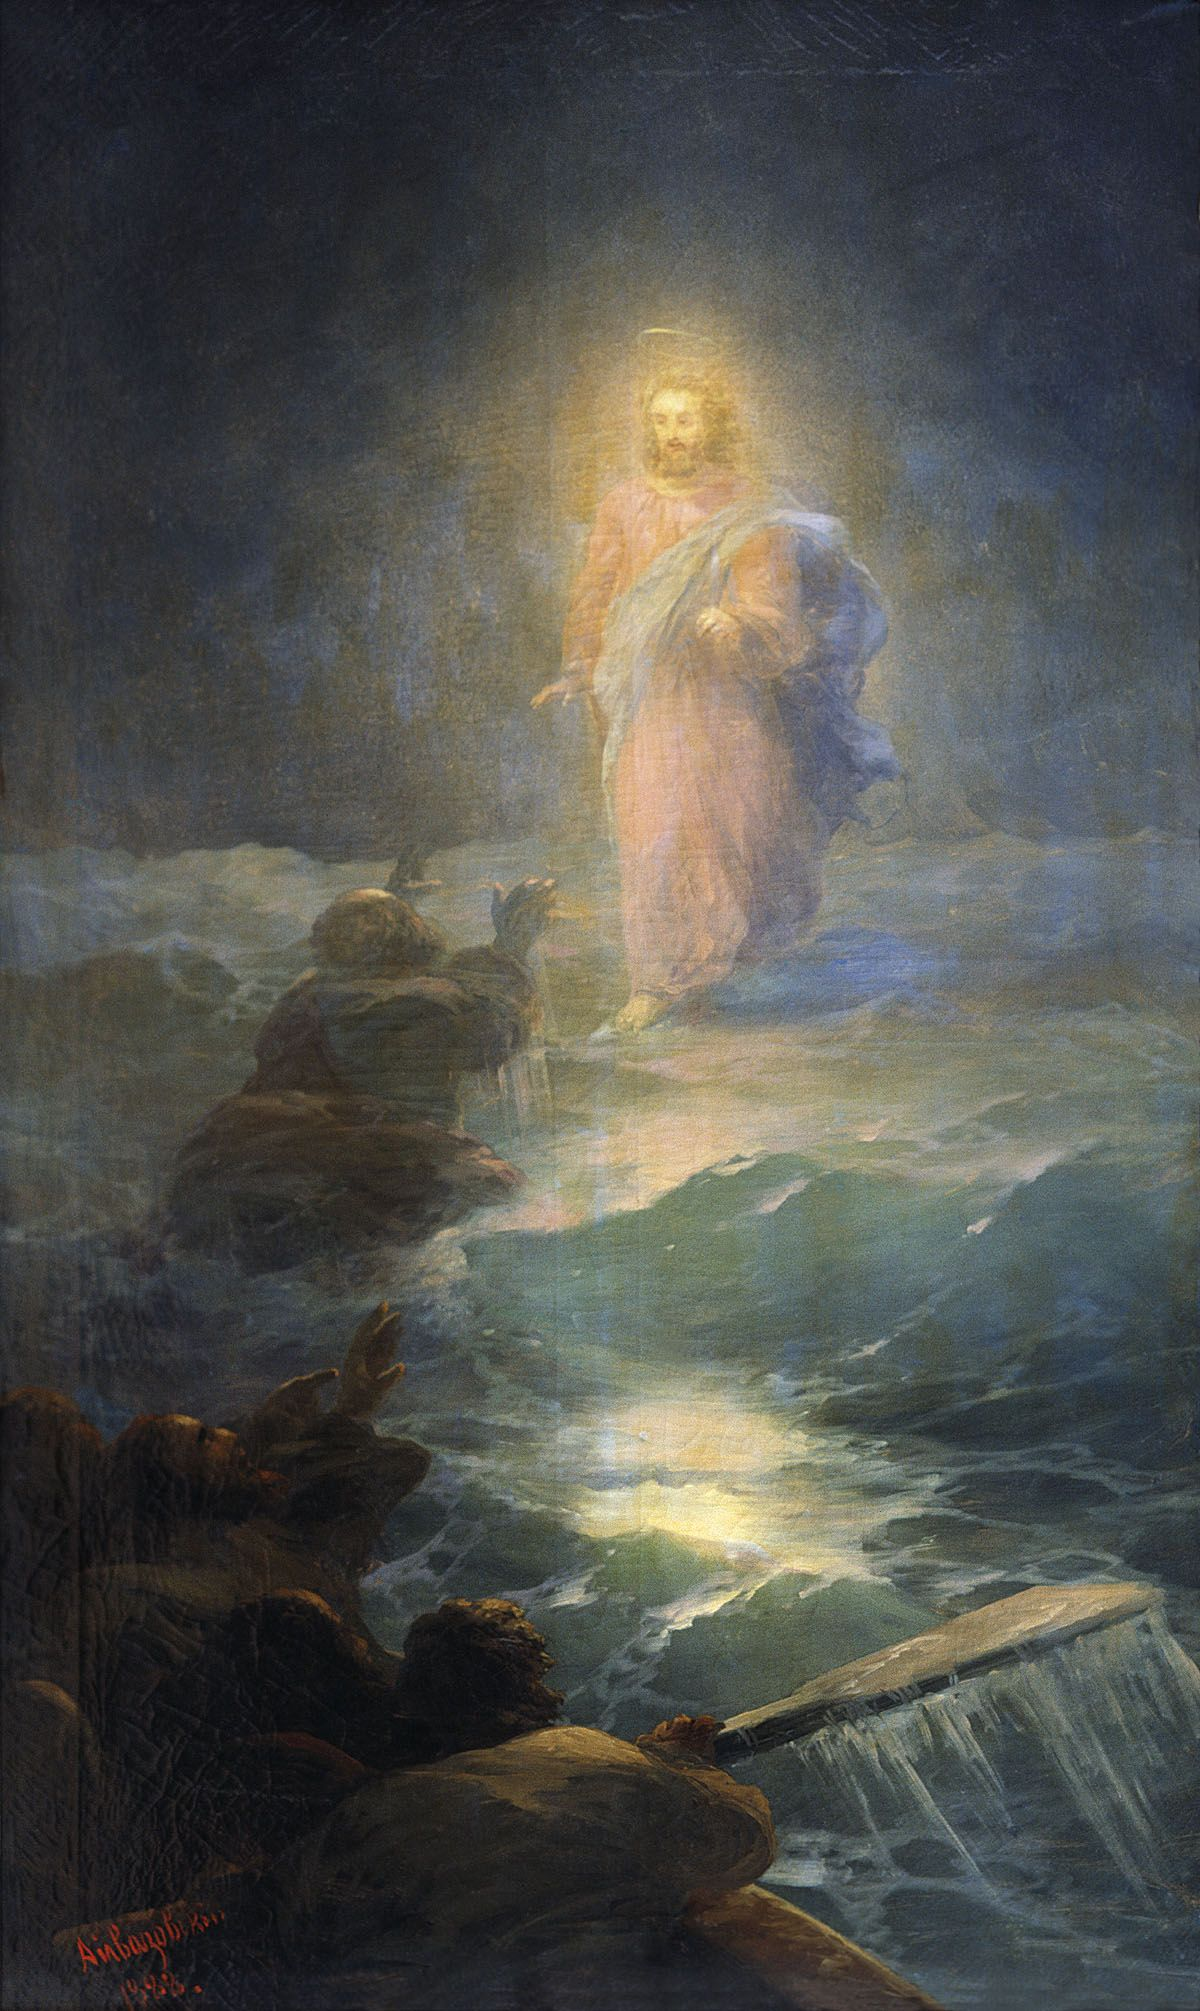 Jesus Walking on Water Art Print Size 16x20 inches